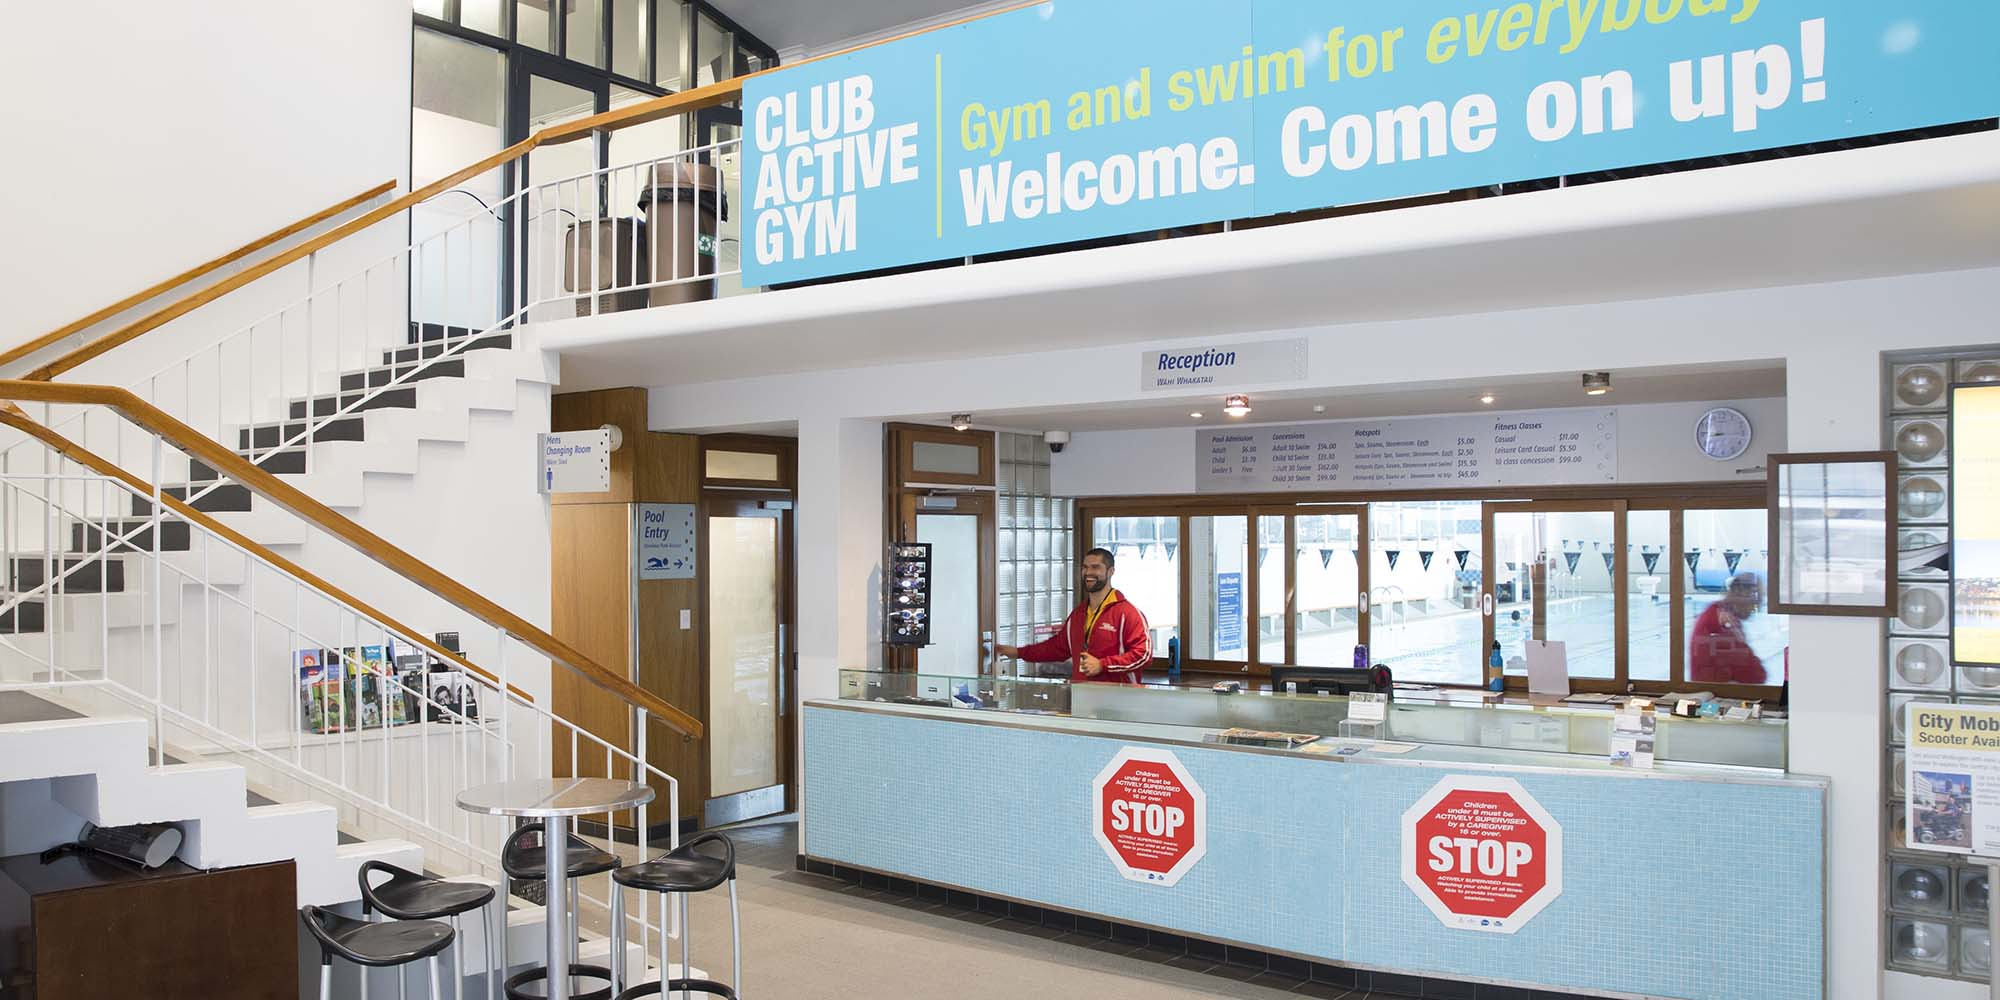 Reception area at Freyberg Pool & Fitness Centre.